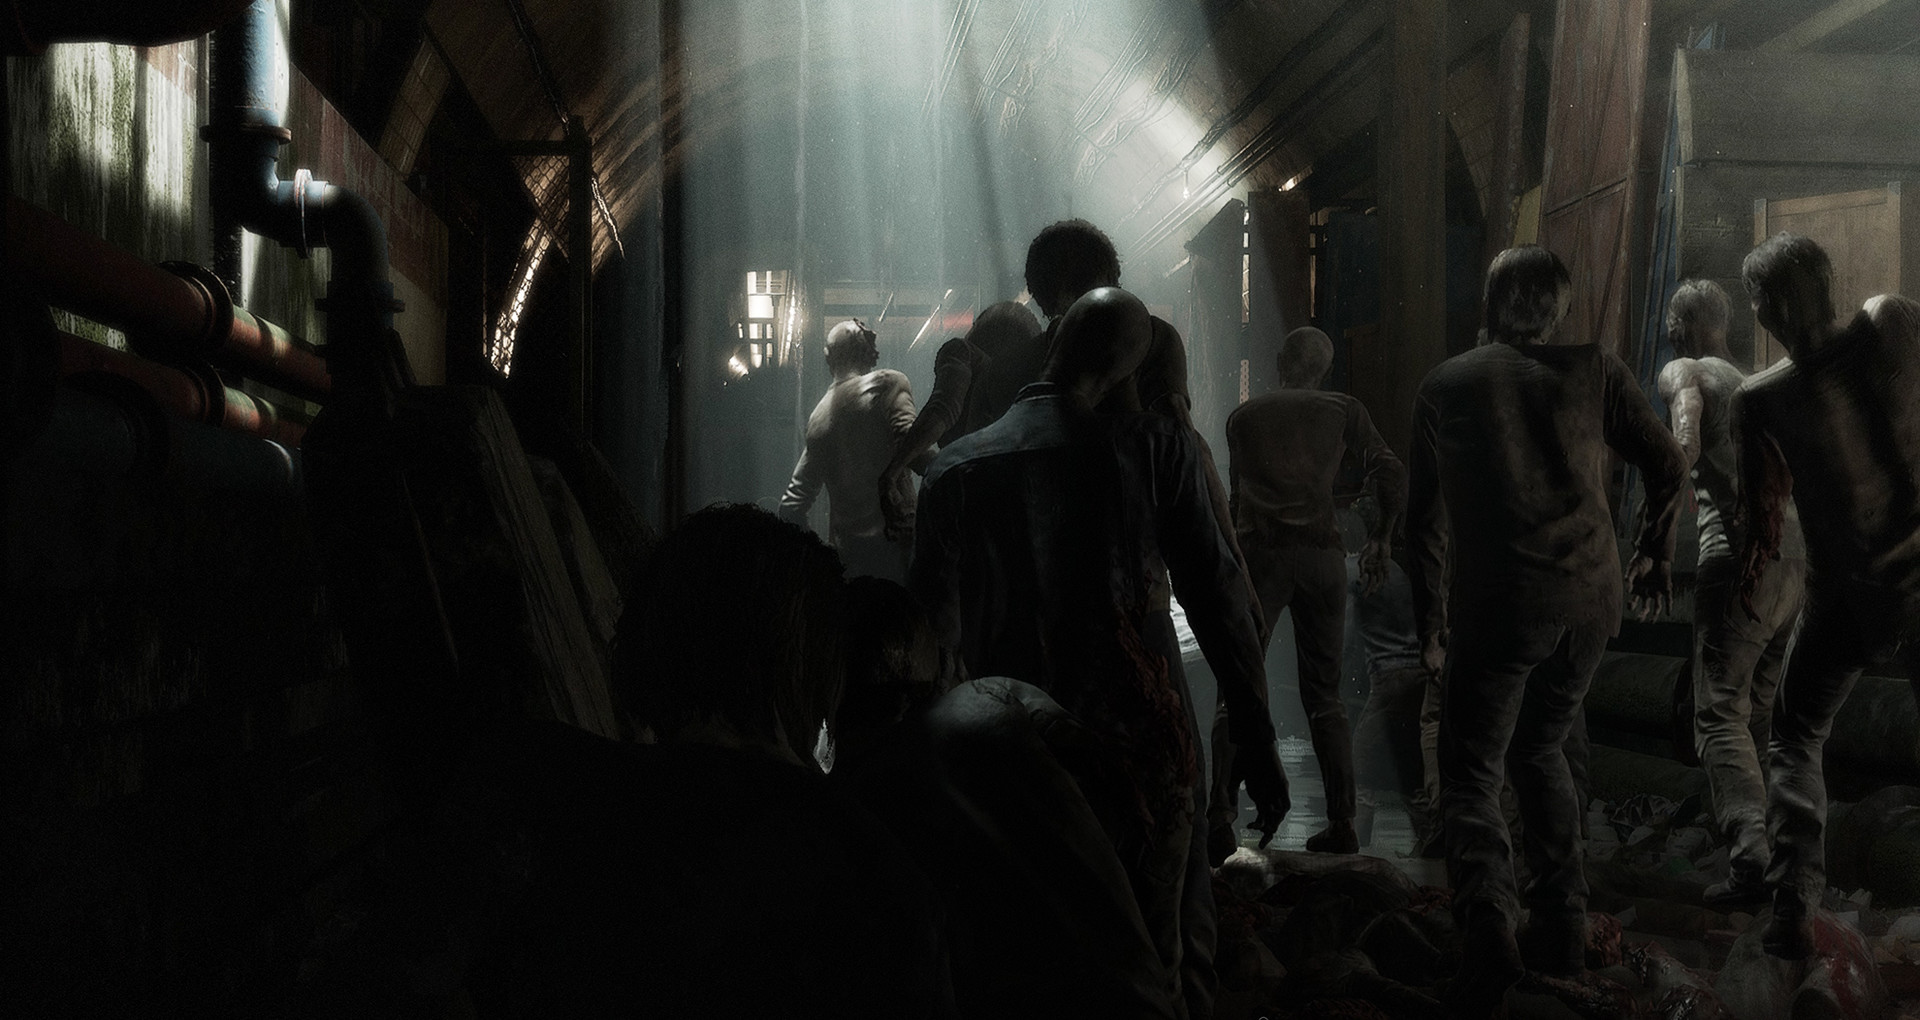 Zombies no longer a sure thing as Overkill's The Walking Dead PC publisher laments 'disappointing' sales screenshot